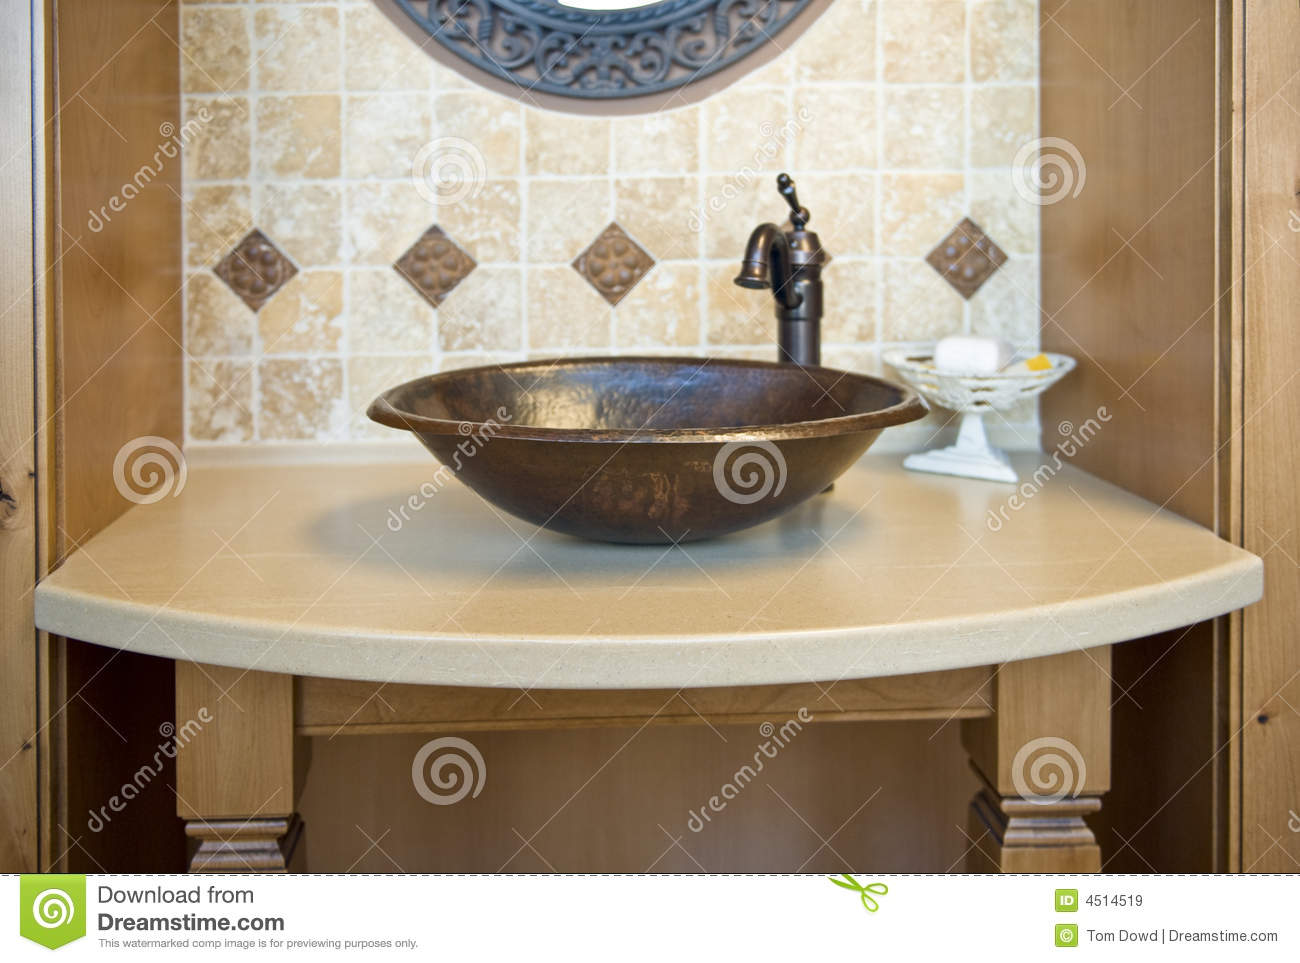 fancy bathroom sinks decorative bathroom sink stock image image of inside 12815